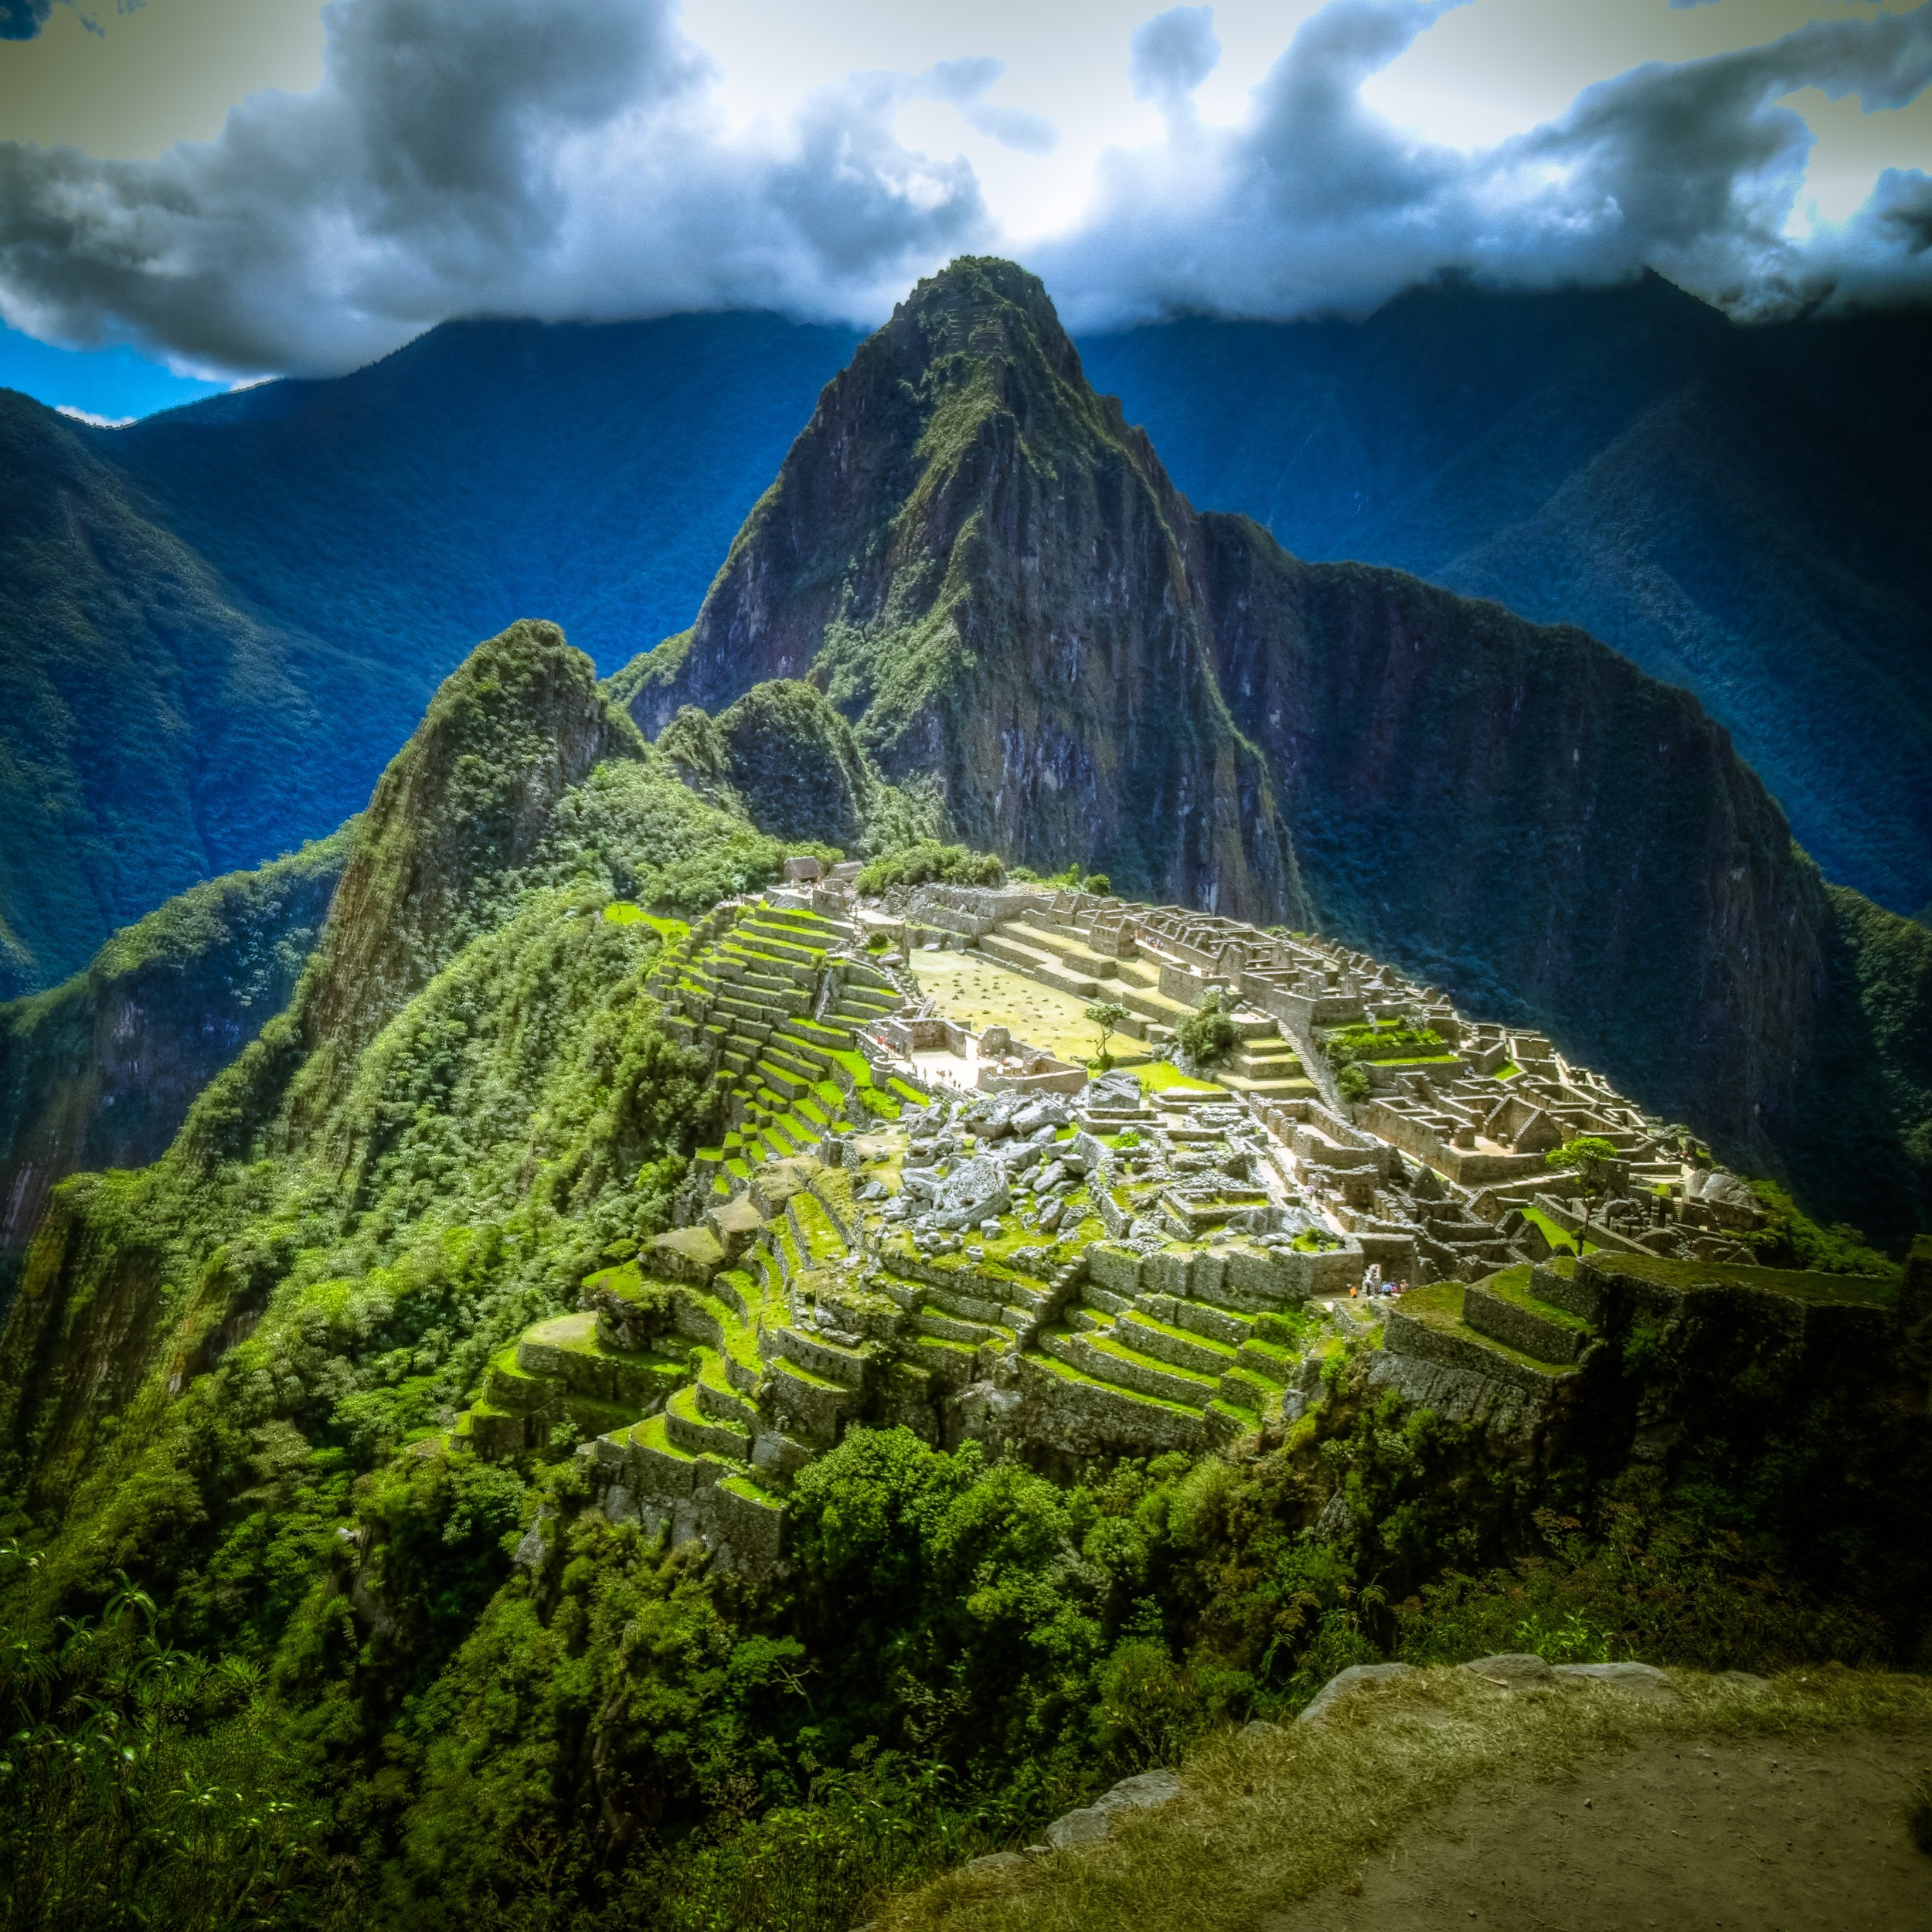 Plant Medicine - Preparation & Integration - I support people who have experienced or would like to experience the plant medecines of the Amazon, the Andes, and Africa. I provide psychotherapeutic preparation and life integration follow up for these treatments.